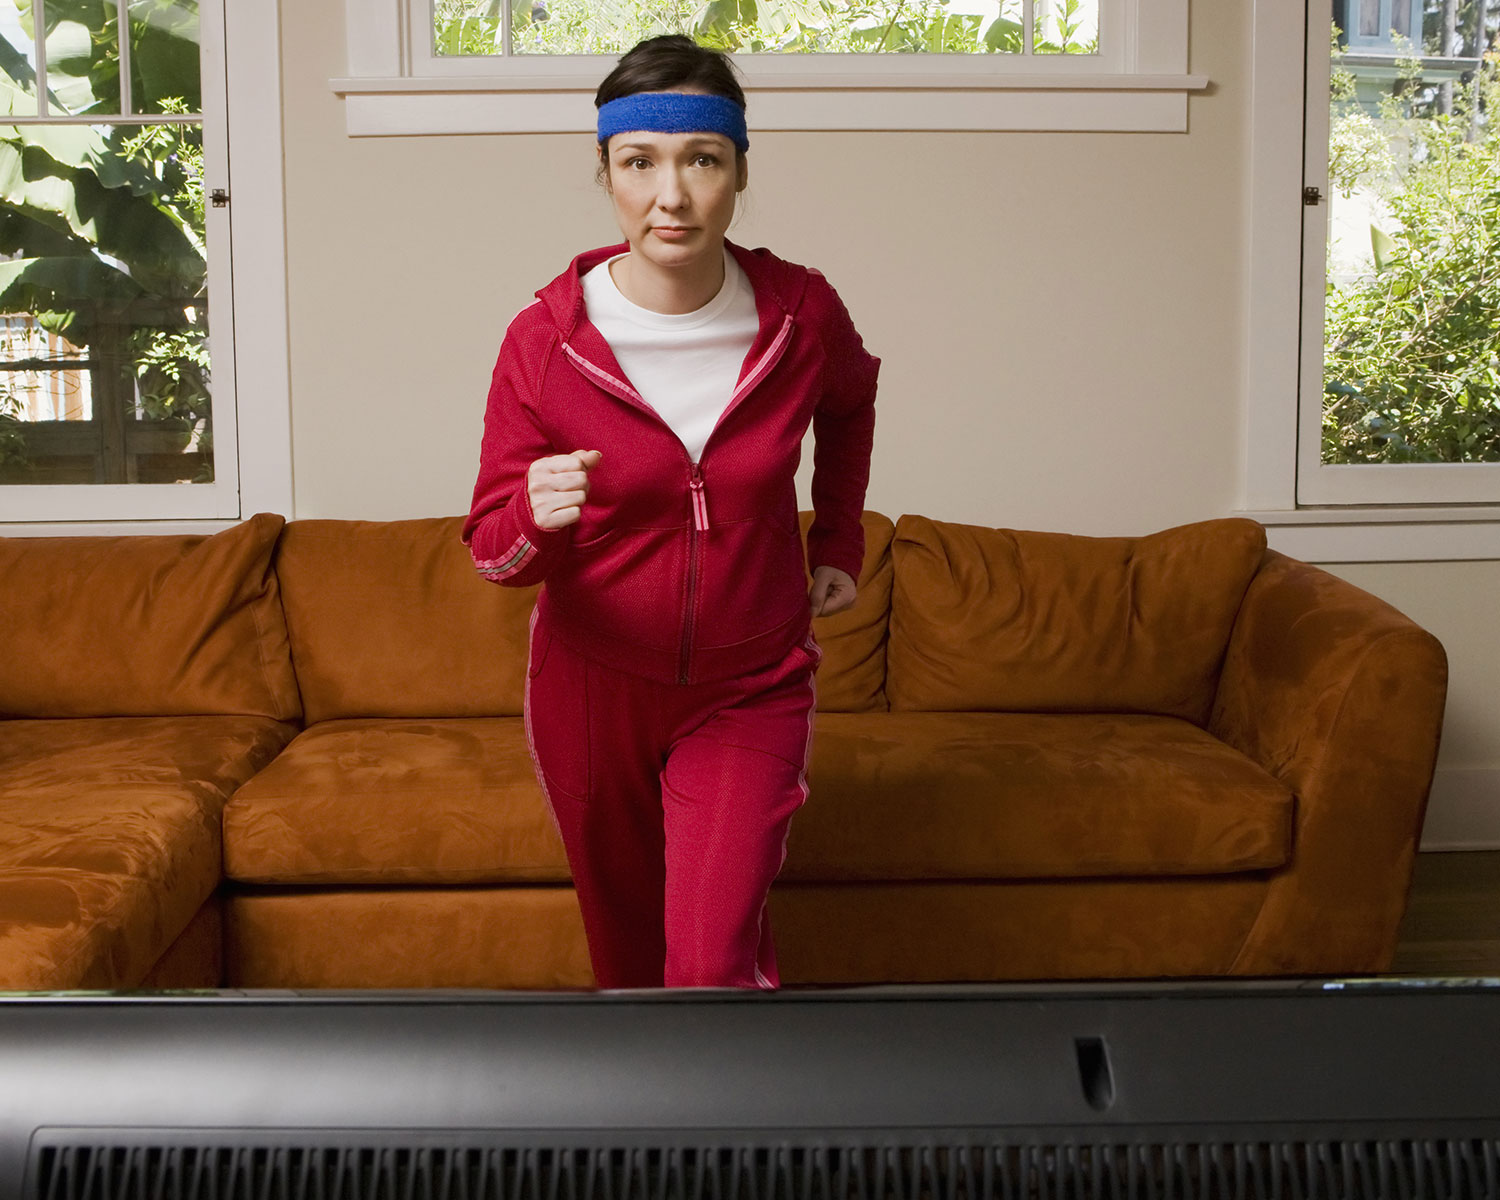 Woman exercising while watching television.